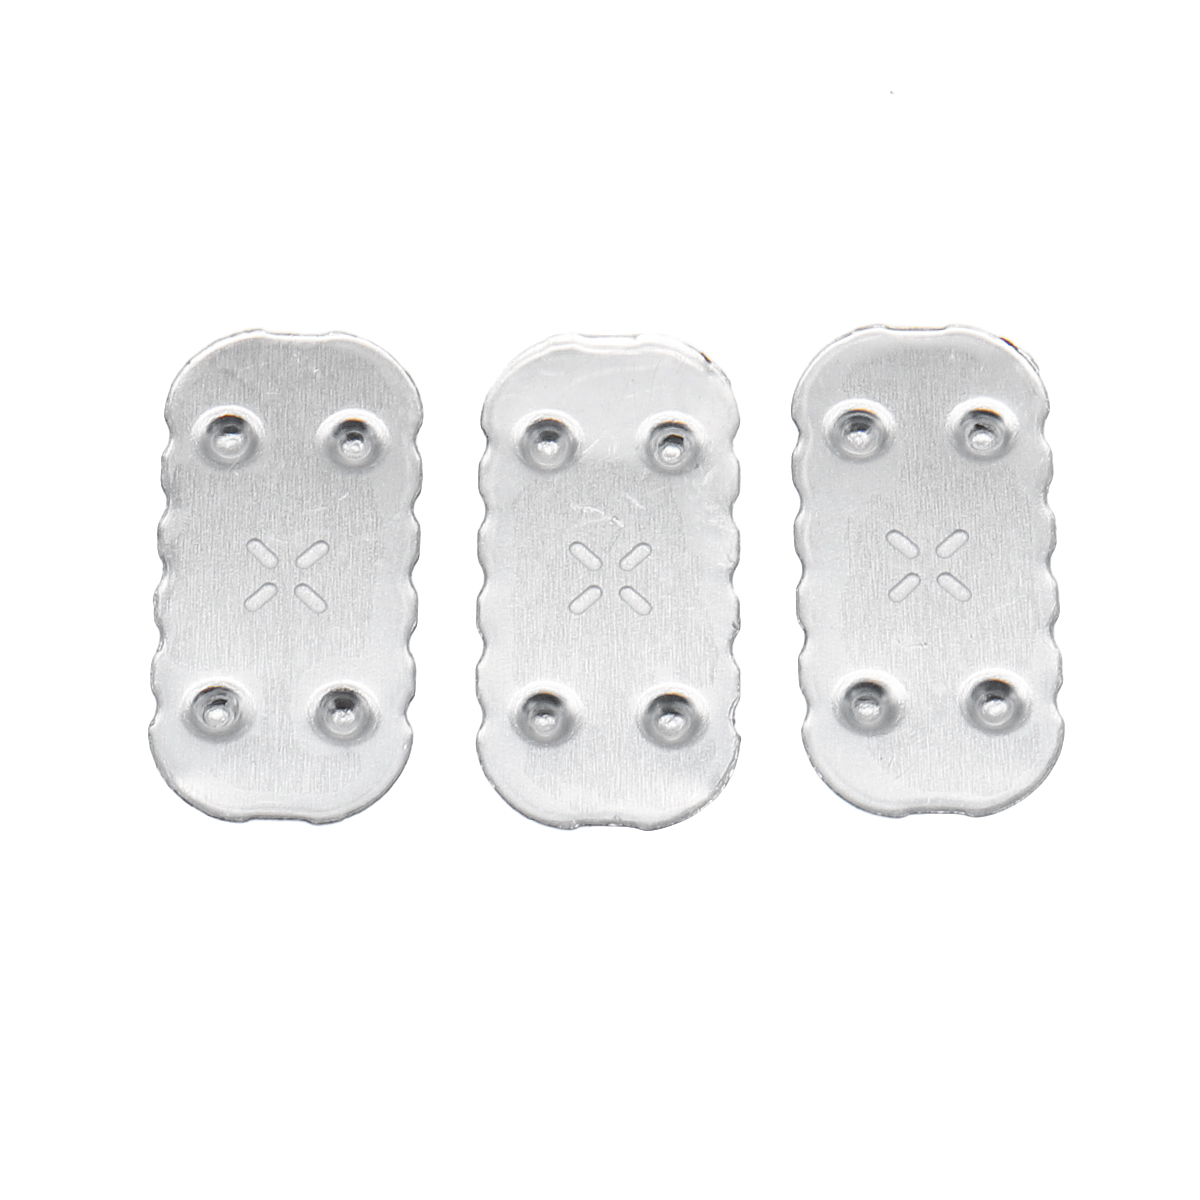 4 Pcs Half Pack Oven Lid Replacement Screens Kit Set for Pax 2/ Pa x 3 Vaporizer Home Automation Kit Vapors Cleaning Smart Home